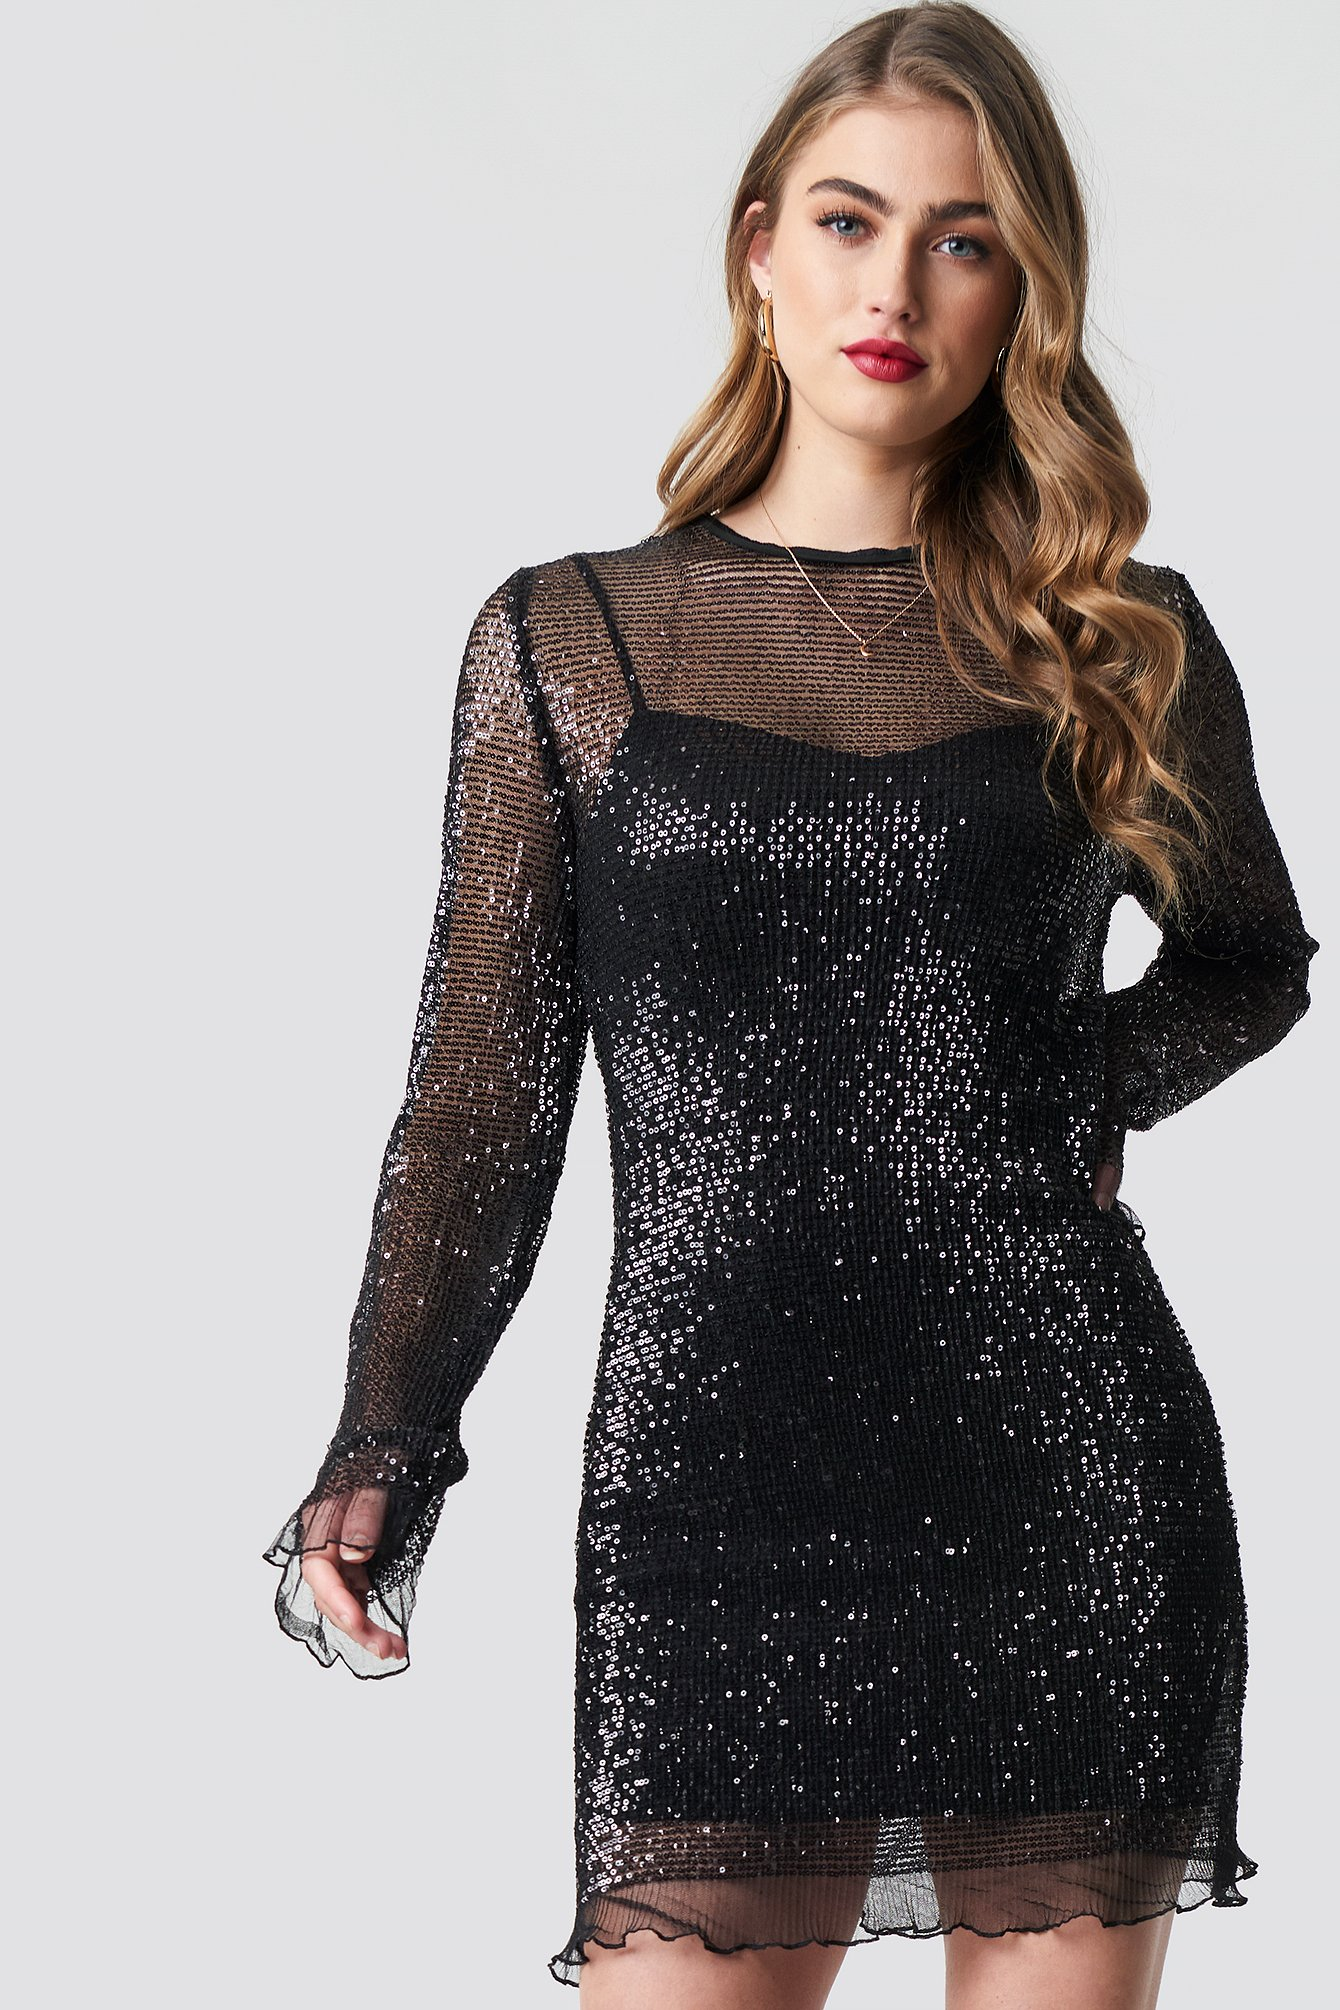 pamela x na-kd -  LS Sequin Transparence Dress - Black